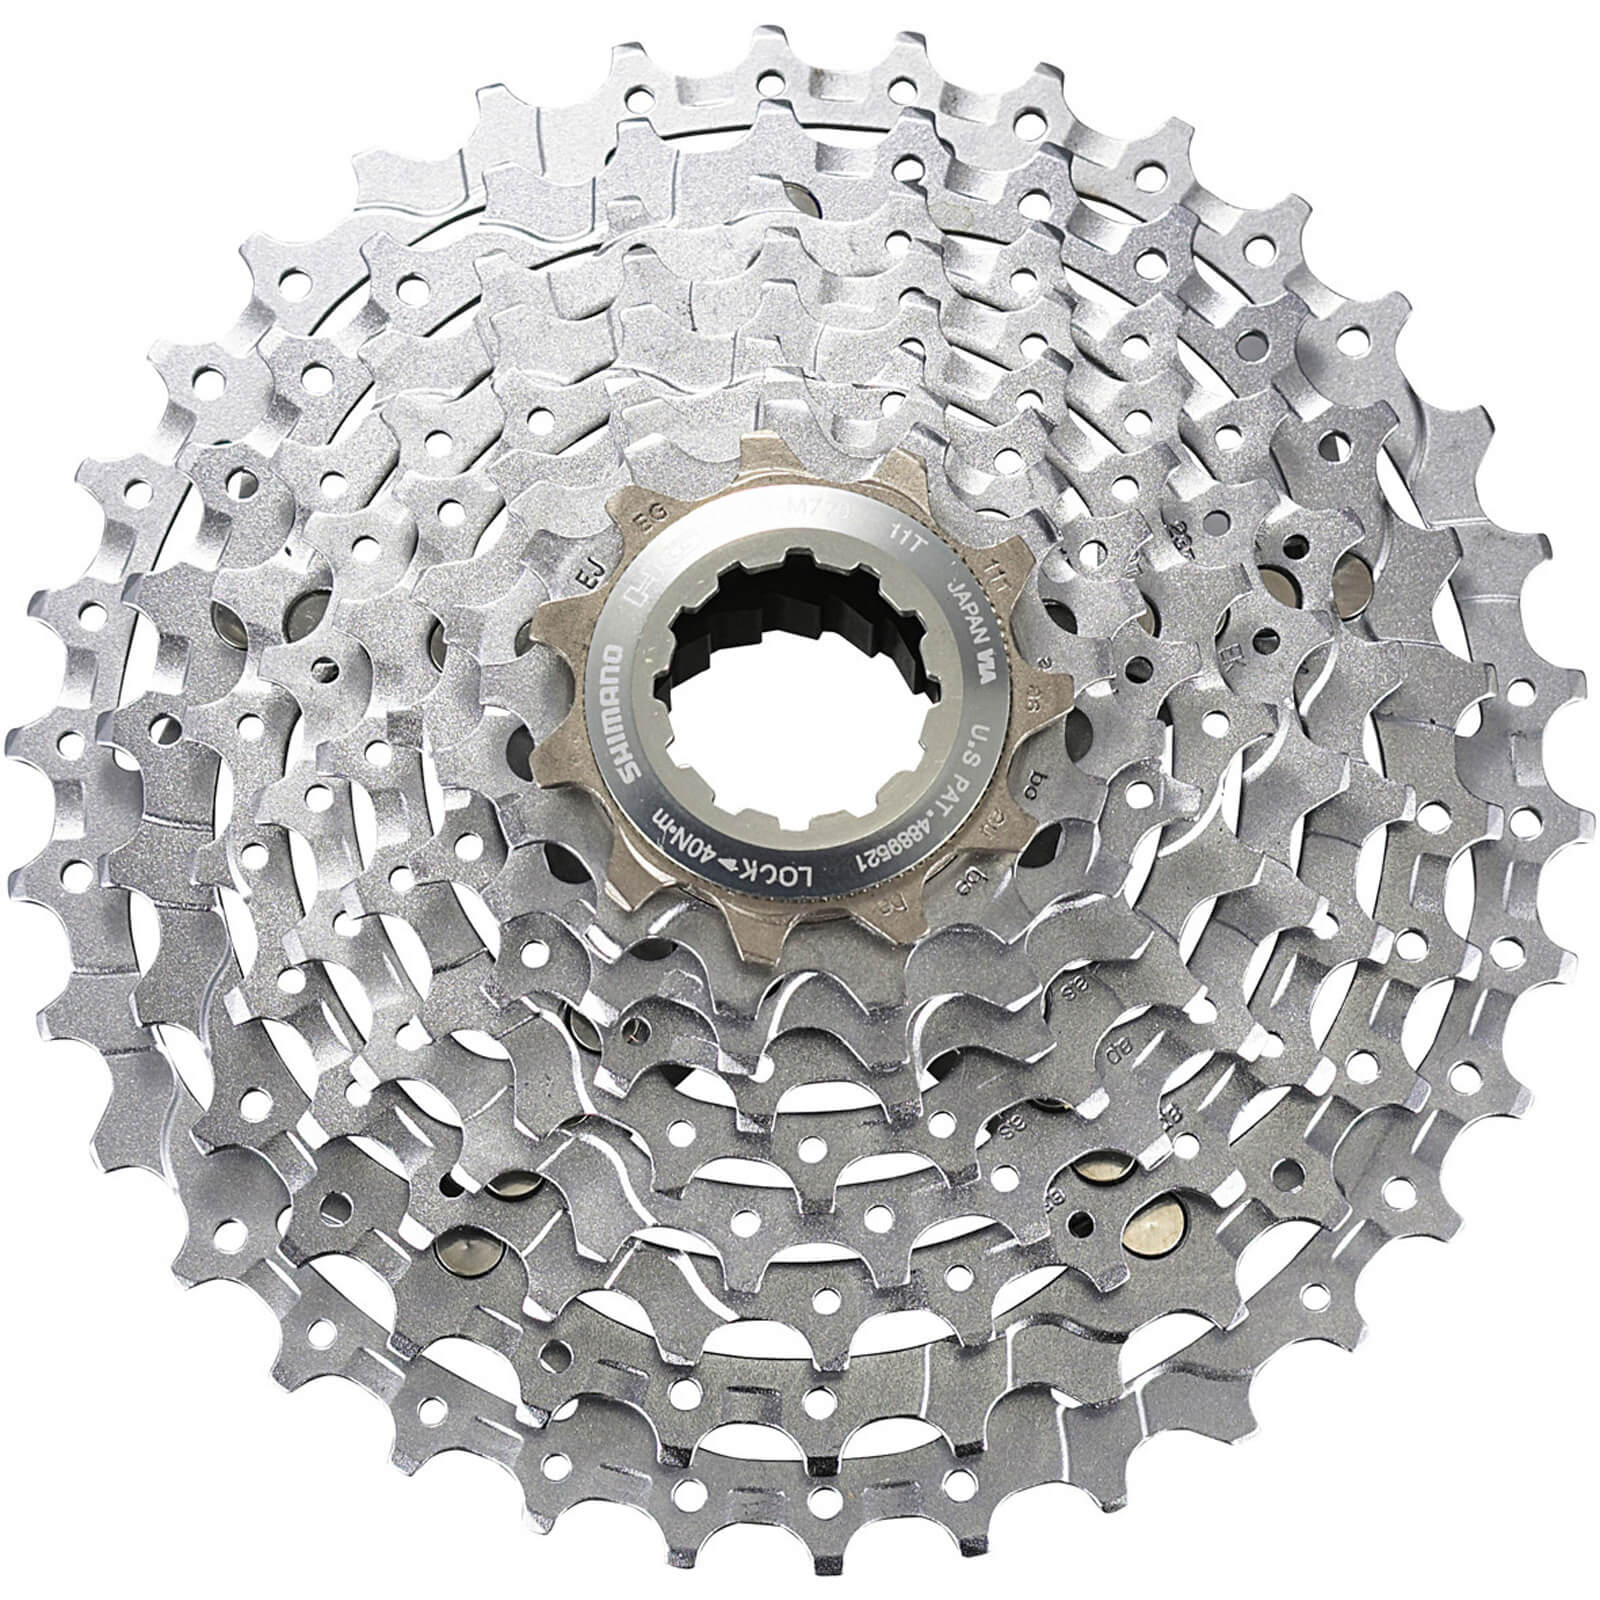 Shimano CS-M770 XT 9-Speed Cassette